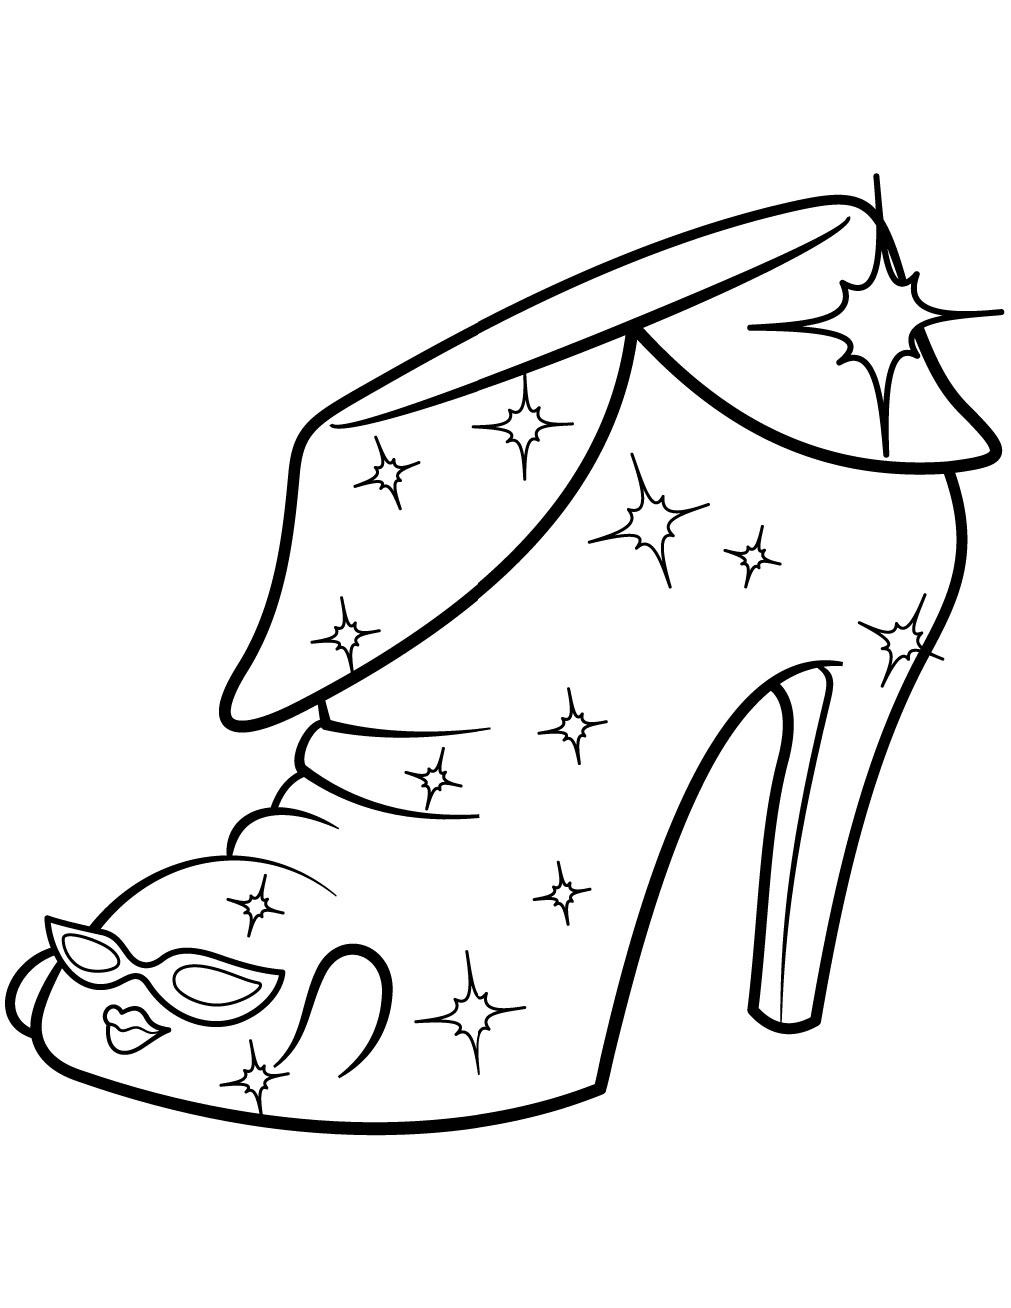 Related Coloring Pages Angie Ankle Boot Shopkin Season 2